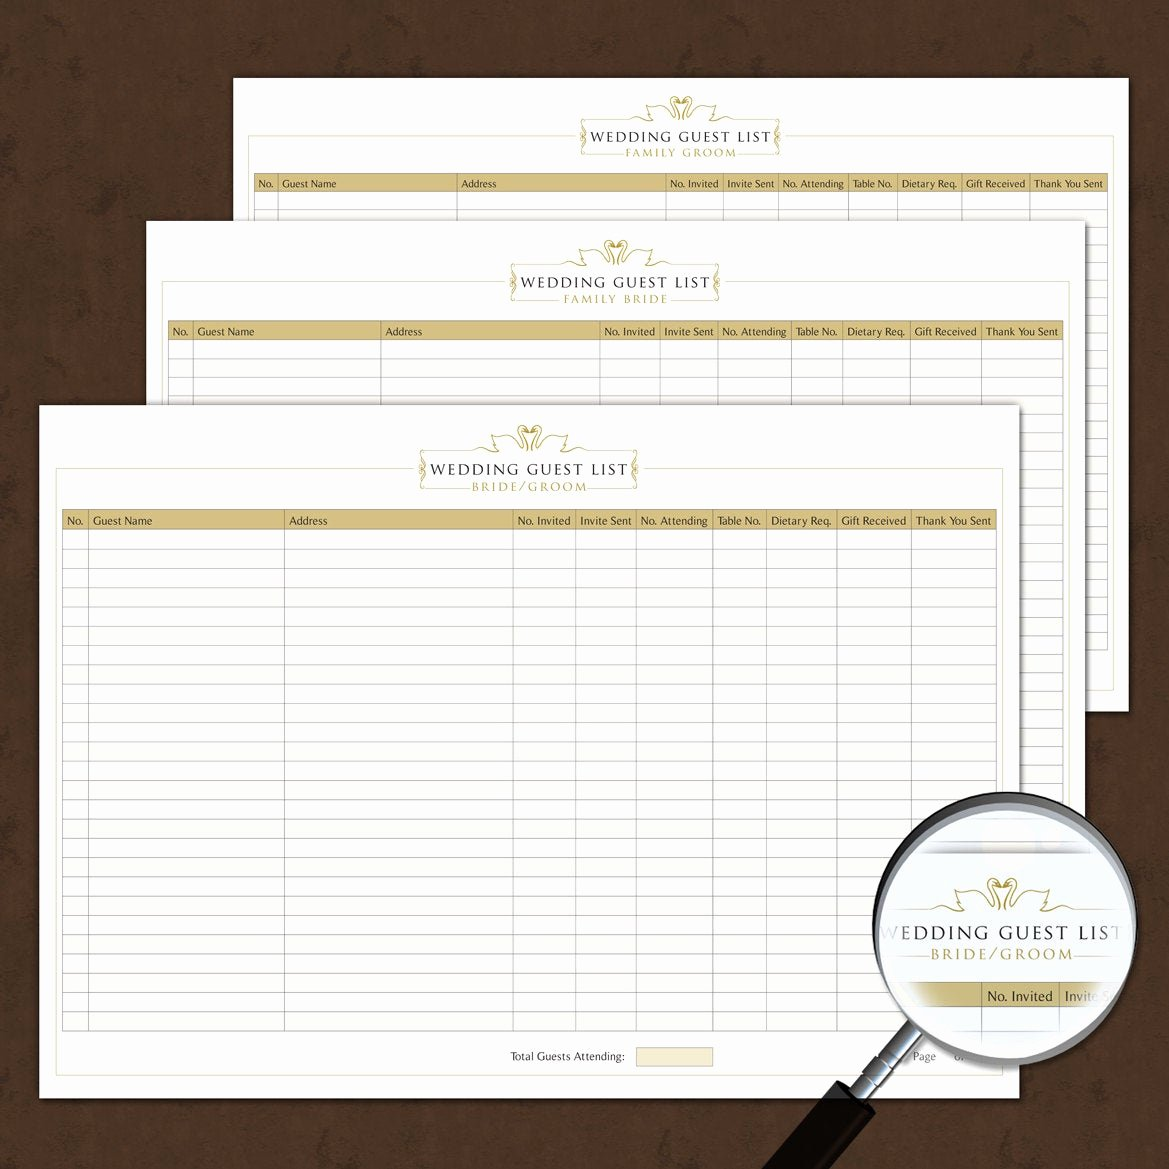 Wedding Invitation List Templates New Wedding Guest List Template Interactive Printable & Fillable